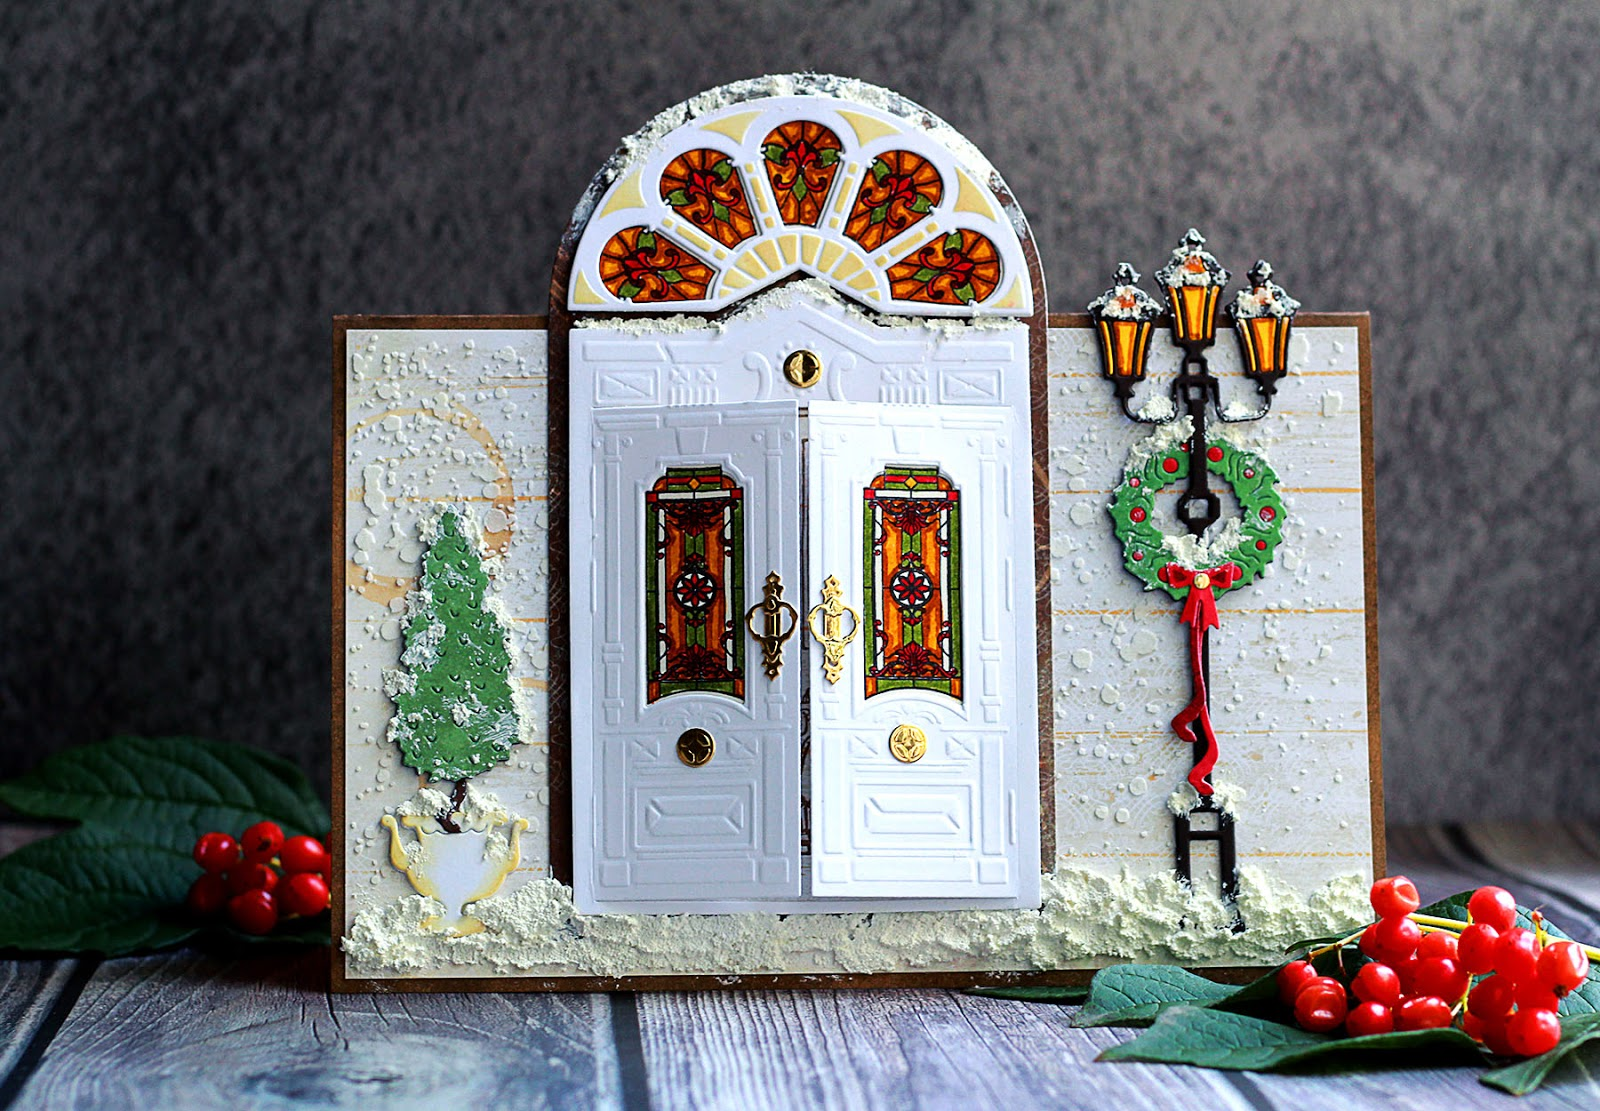 Welcome Christmas.Building Your World 25 Days Of Christmas 2019 Begins Day